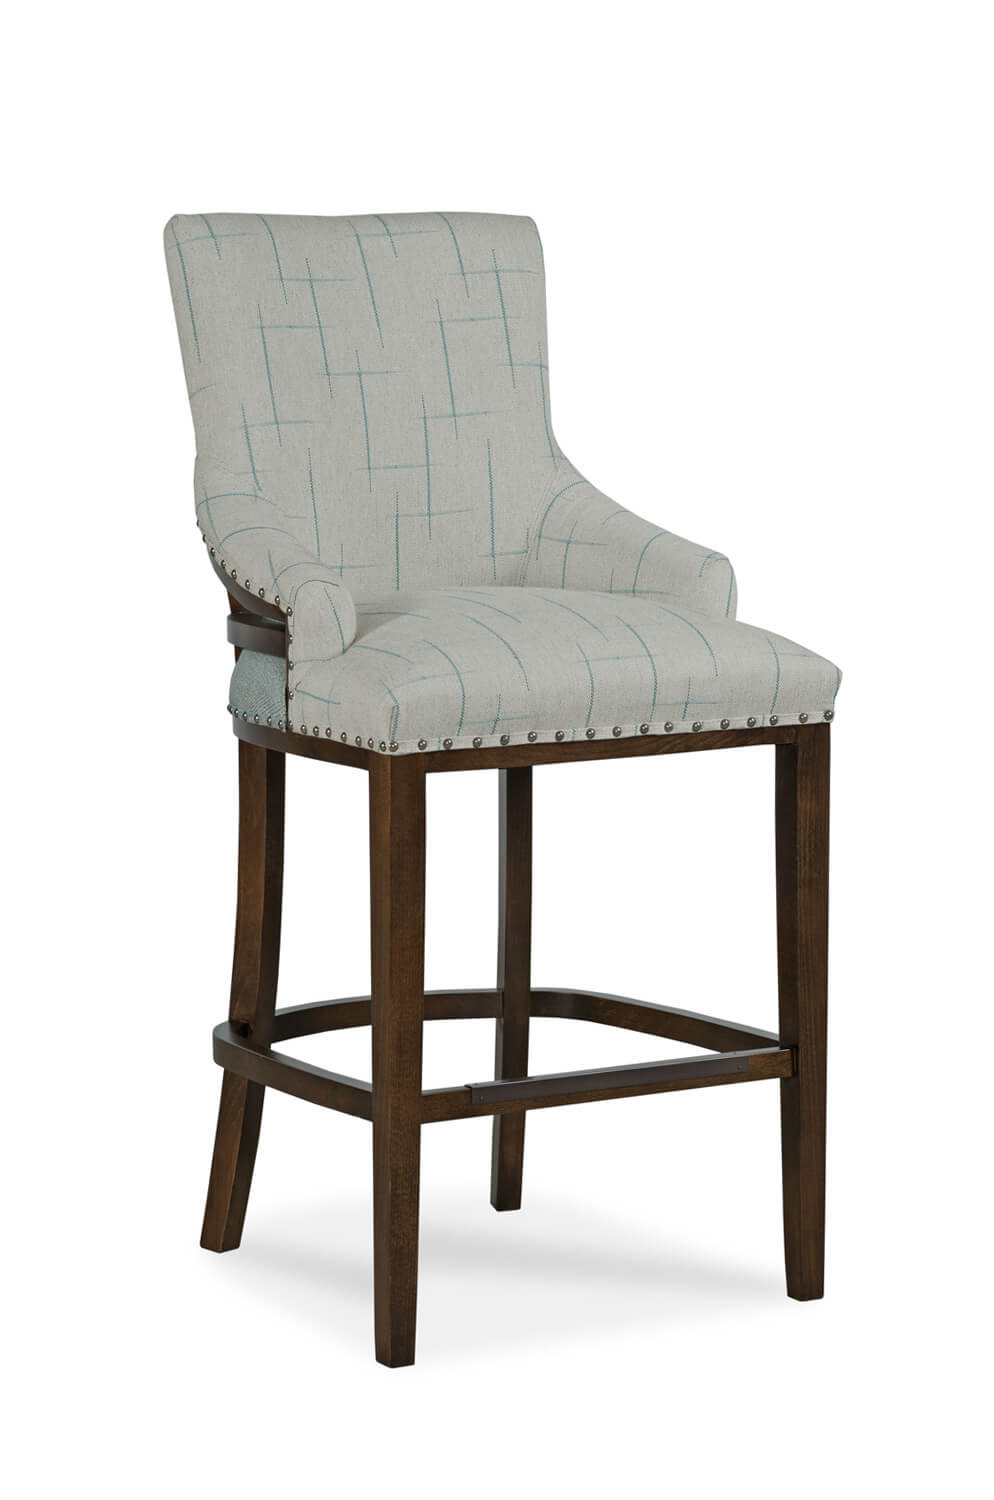 Upholstered Bar and Counter Stools with Nailheads